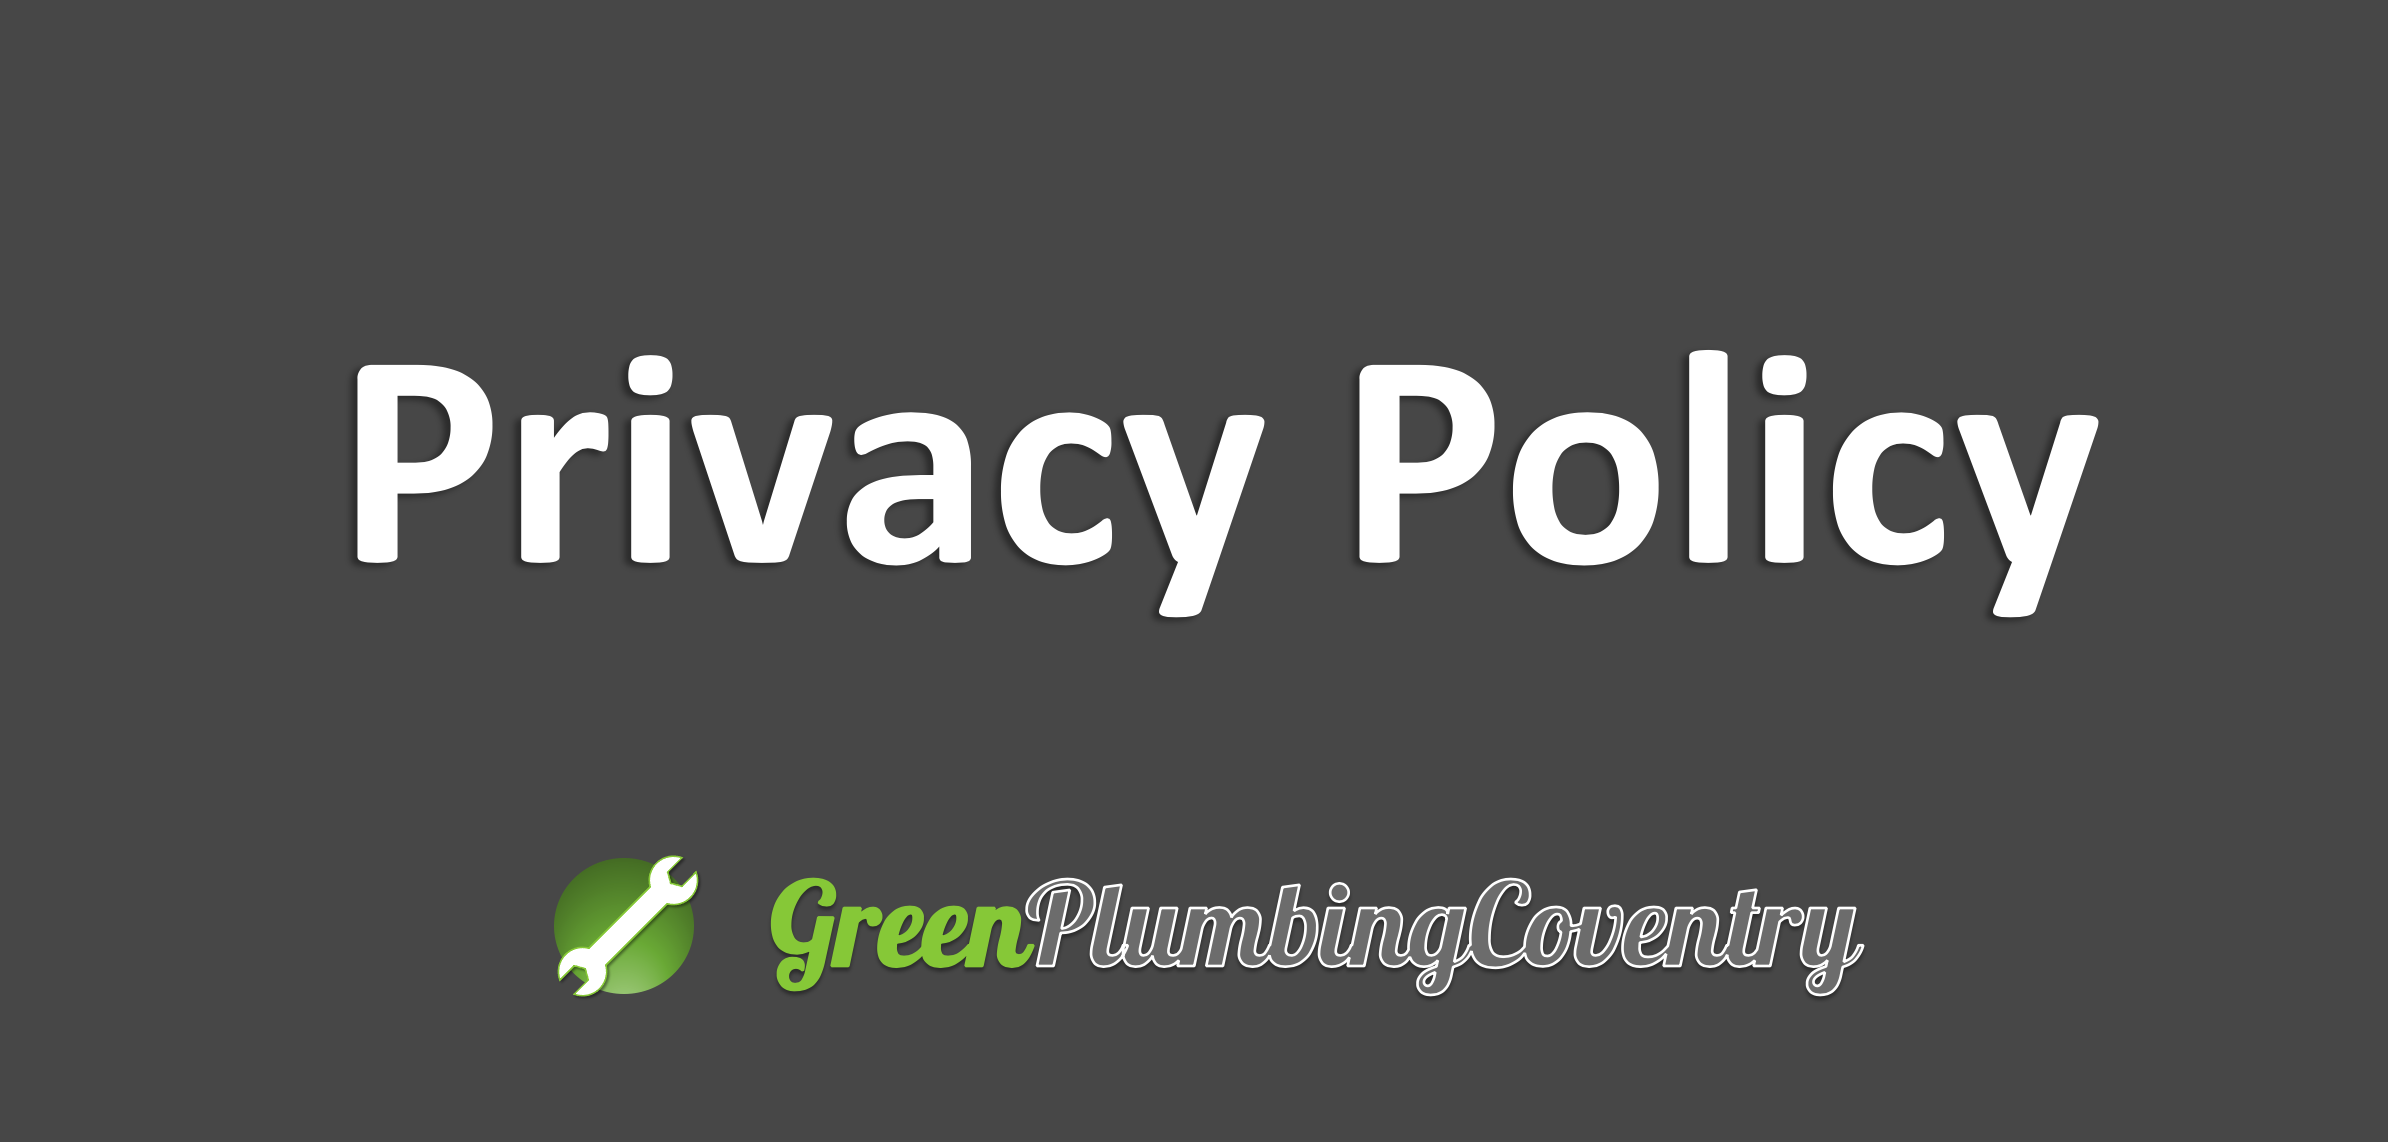 Green plumbing coventry privacy policy pic